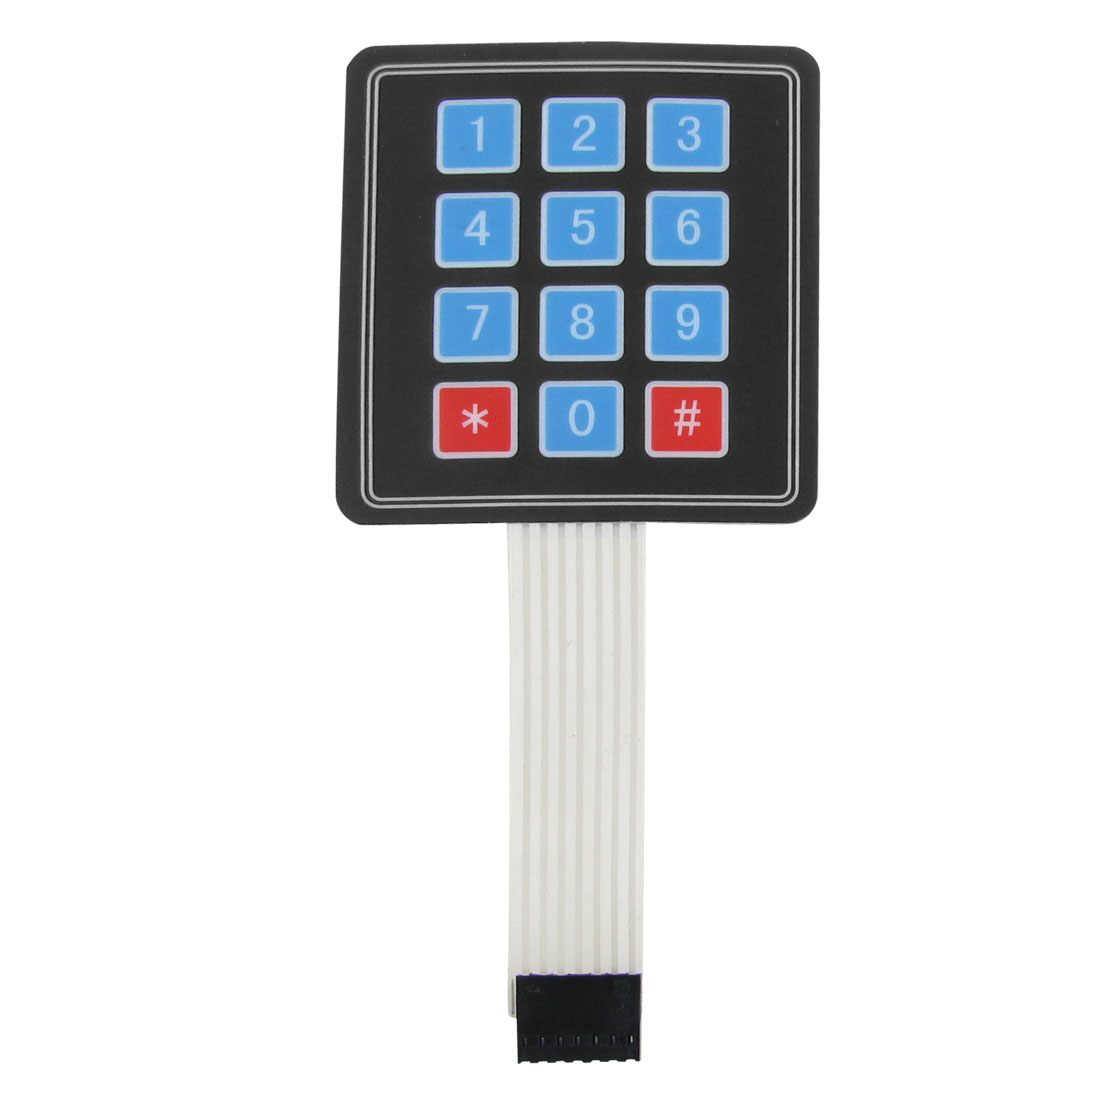 3x4 12 Key Matrix DIY Membrane Switch Touch Pad 77x69x0.8mm DC 12V